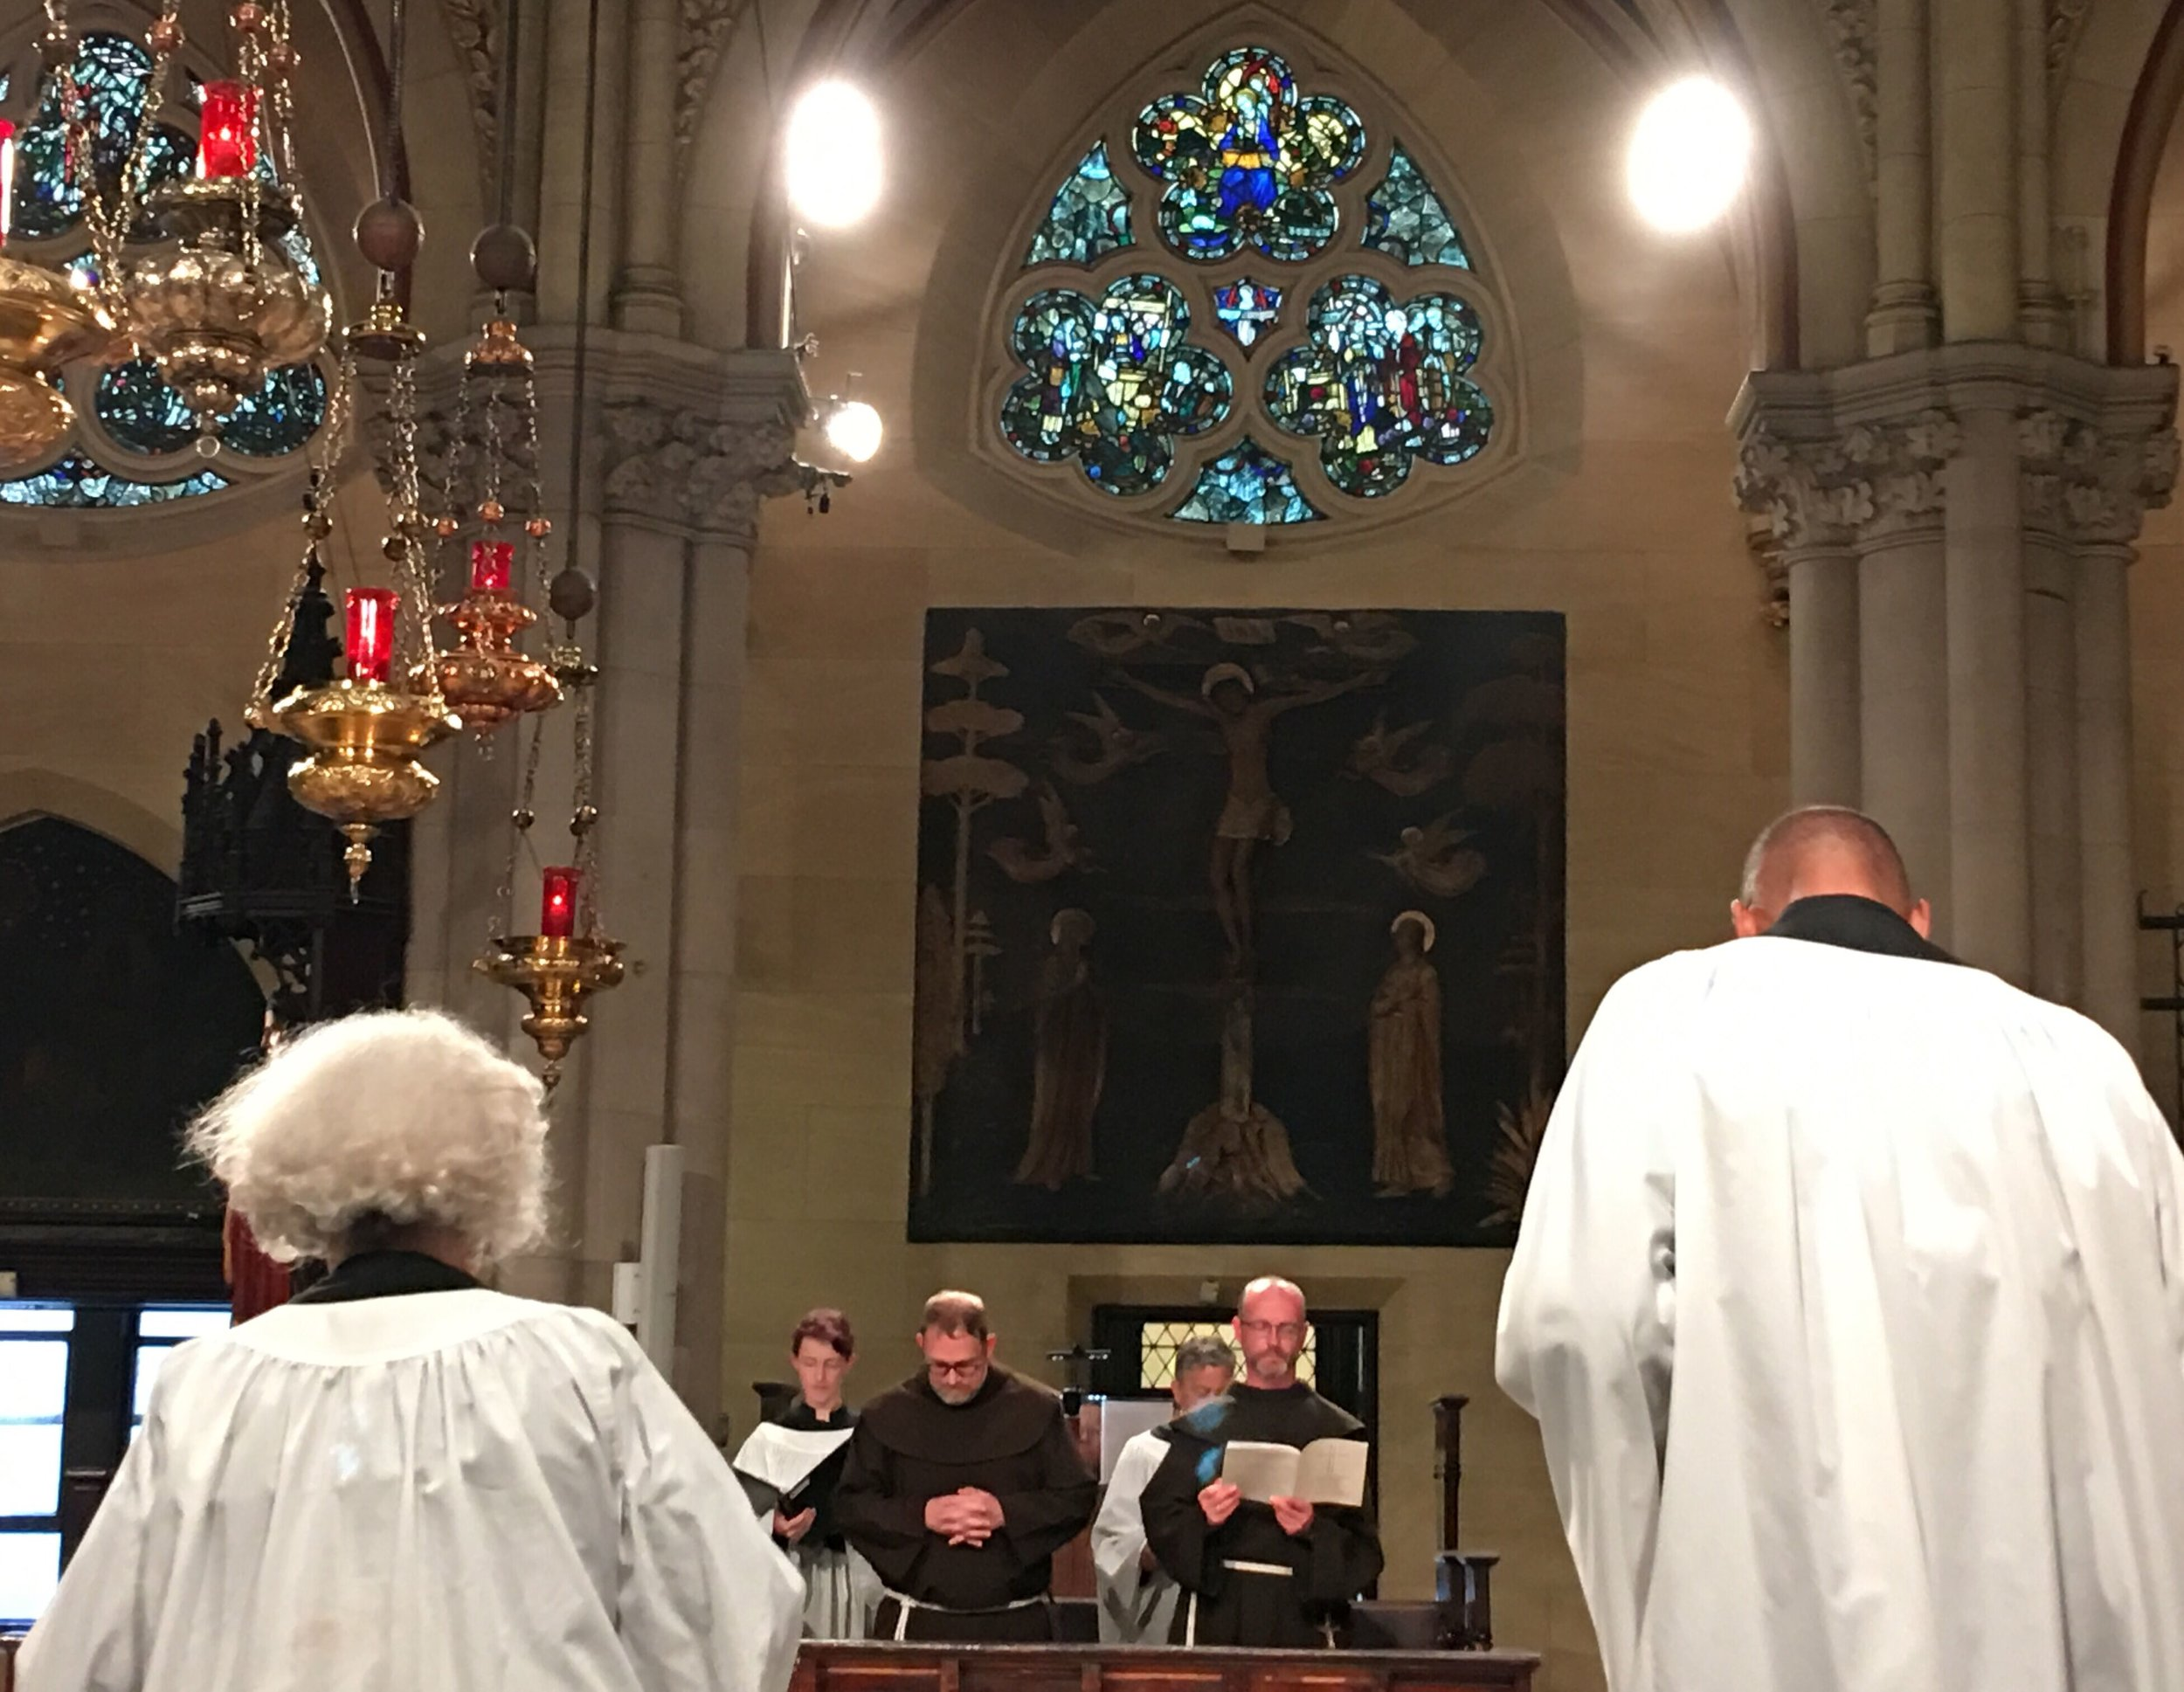 In choir, at the Solemn Mass: in the foreground, from the back (l. to r.): acolytes Julie Gillis and Charles Carson; in the background, facing front (l. to r.): Cantor Charlotte Mundy, Brother Damien Joseph SSF and Brother Desmond Alban SSF.   Photo:  Renée Pecquex